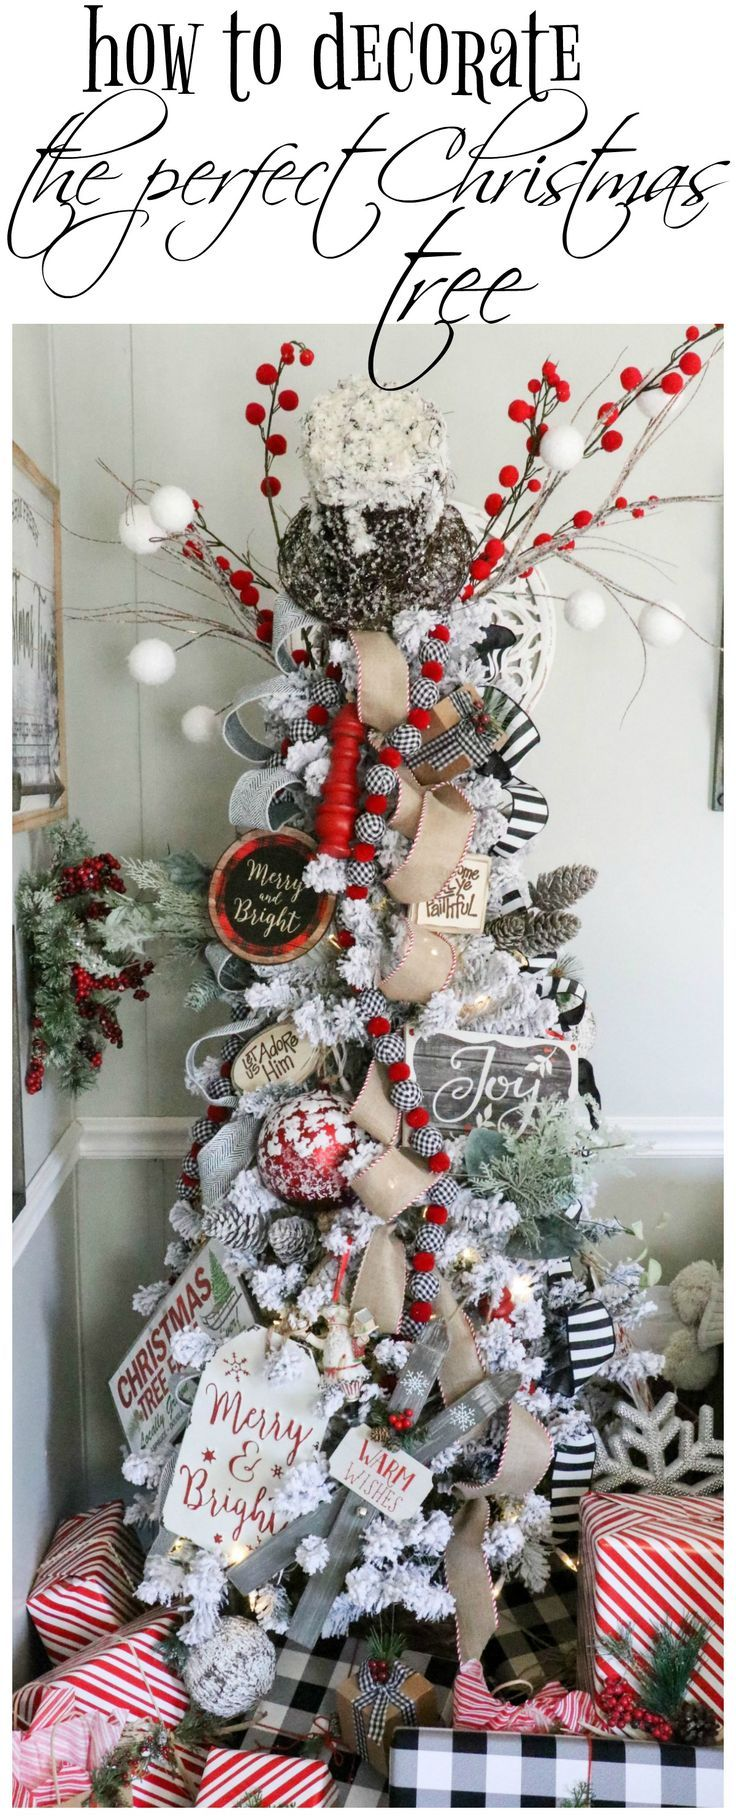 How to decorate the PERFECT Christmas tree- learn how to decorate a beautiful Christmas tree full of your favorite things  An easy video tutorial on the blog, showing how to decorate a Christmas from start to finish  christmas tree tutorial  decorate christmas tree  how to decorate christmas tree #christmastree #Christmasdecorating #Christmasdecor